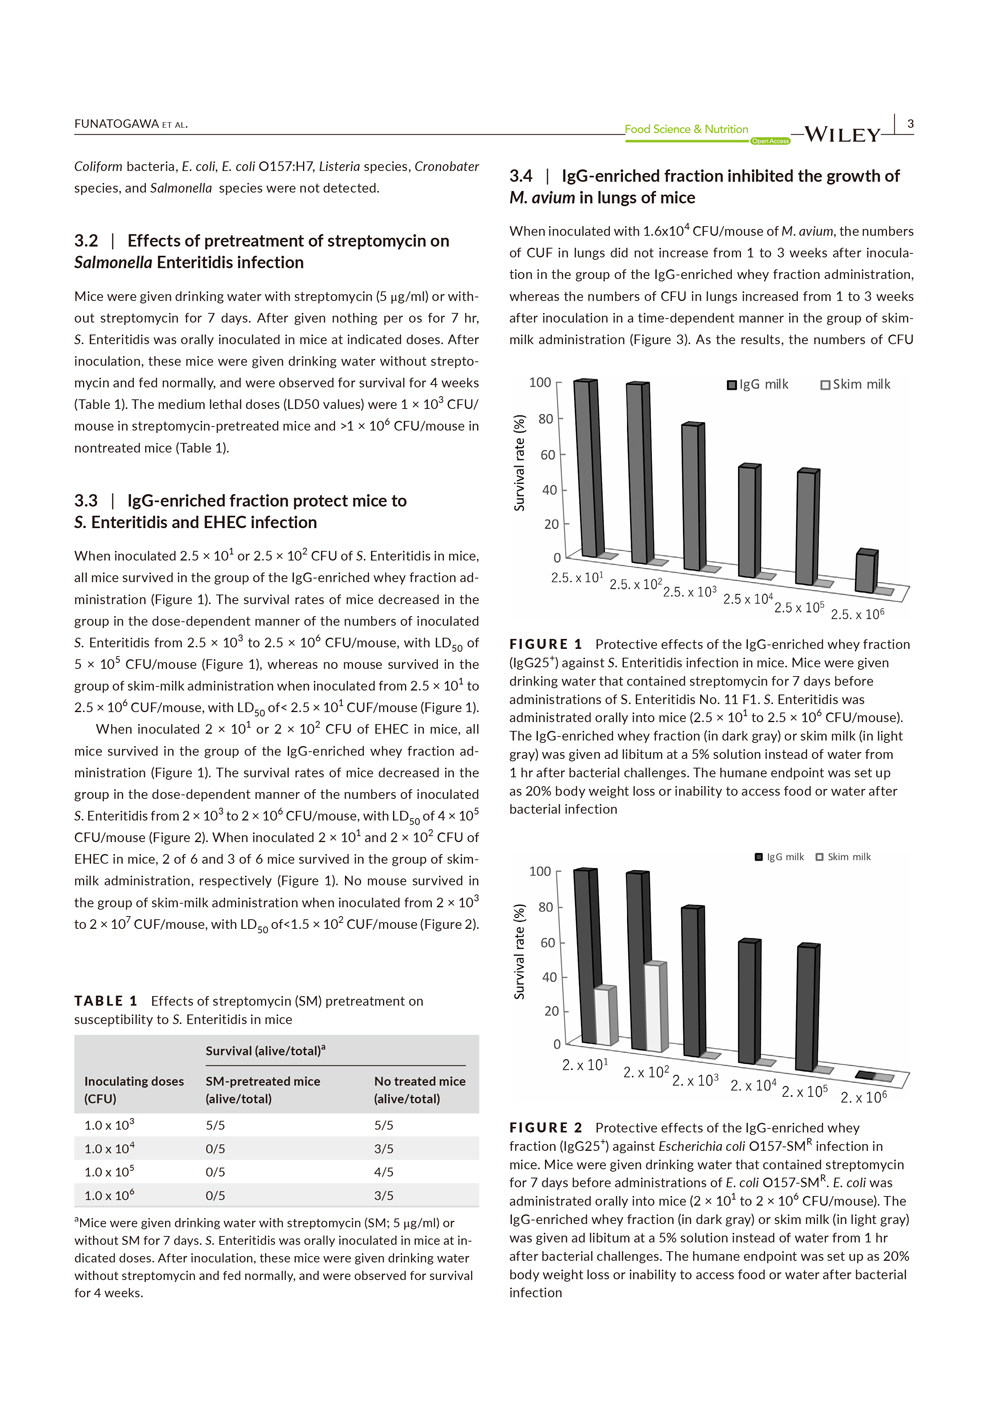 The effectiveness of bovine IgG fraction against salmonella, O-157 and non-tuberculous mycobacteria P3